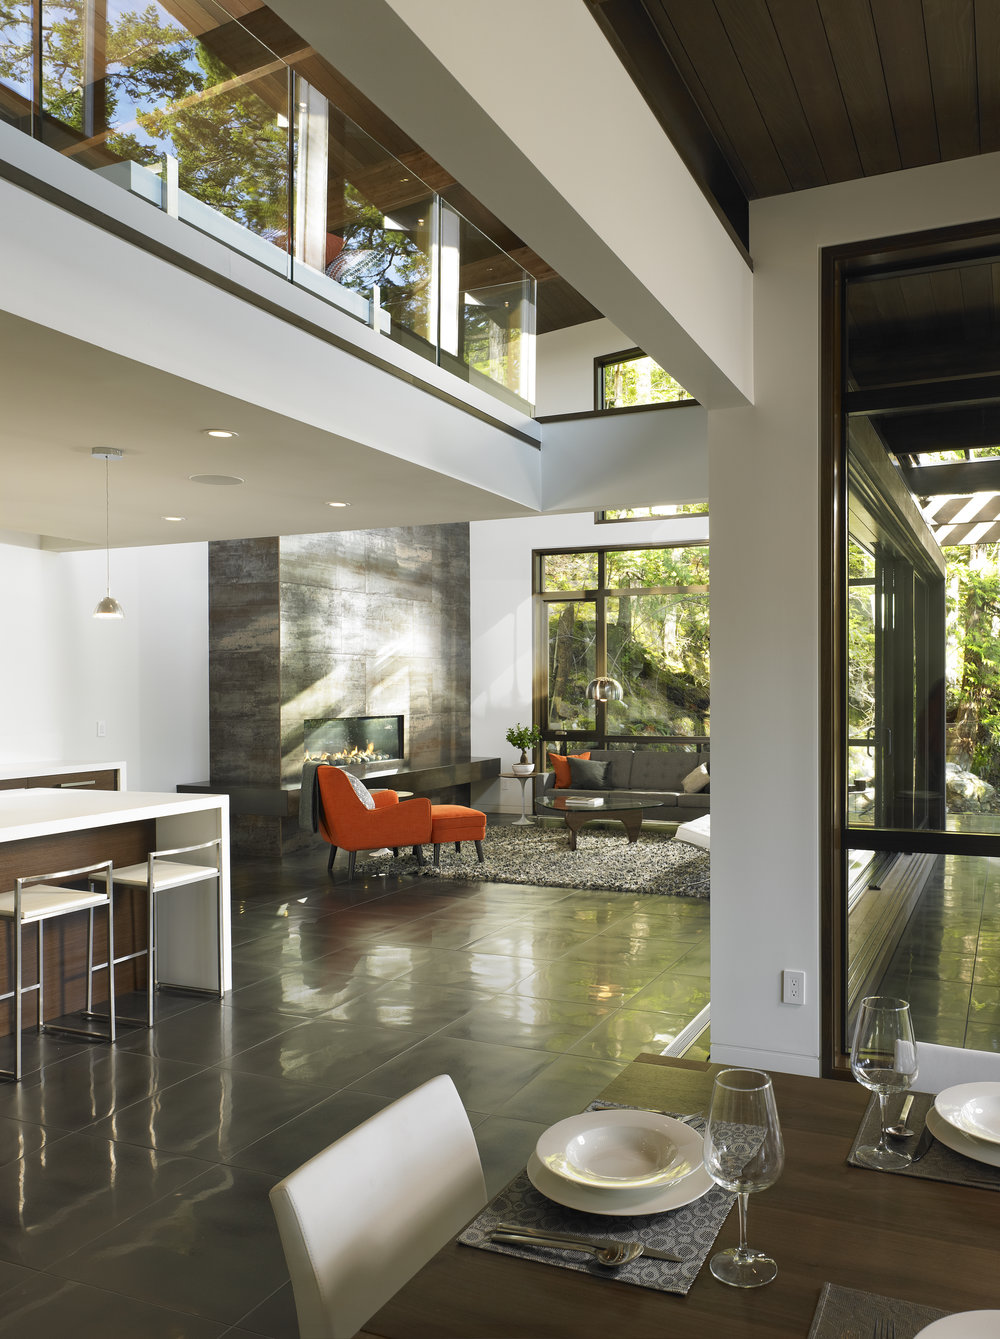 turkel_modern_design_prefab_gambier_island_house_great_room_interior.jpg